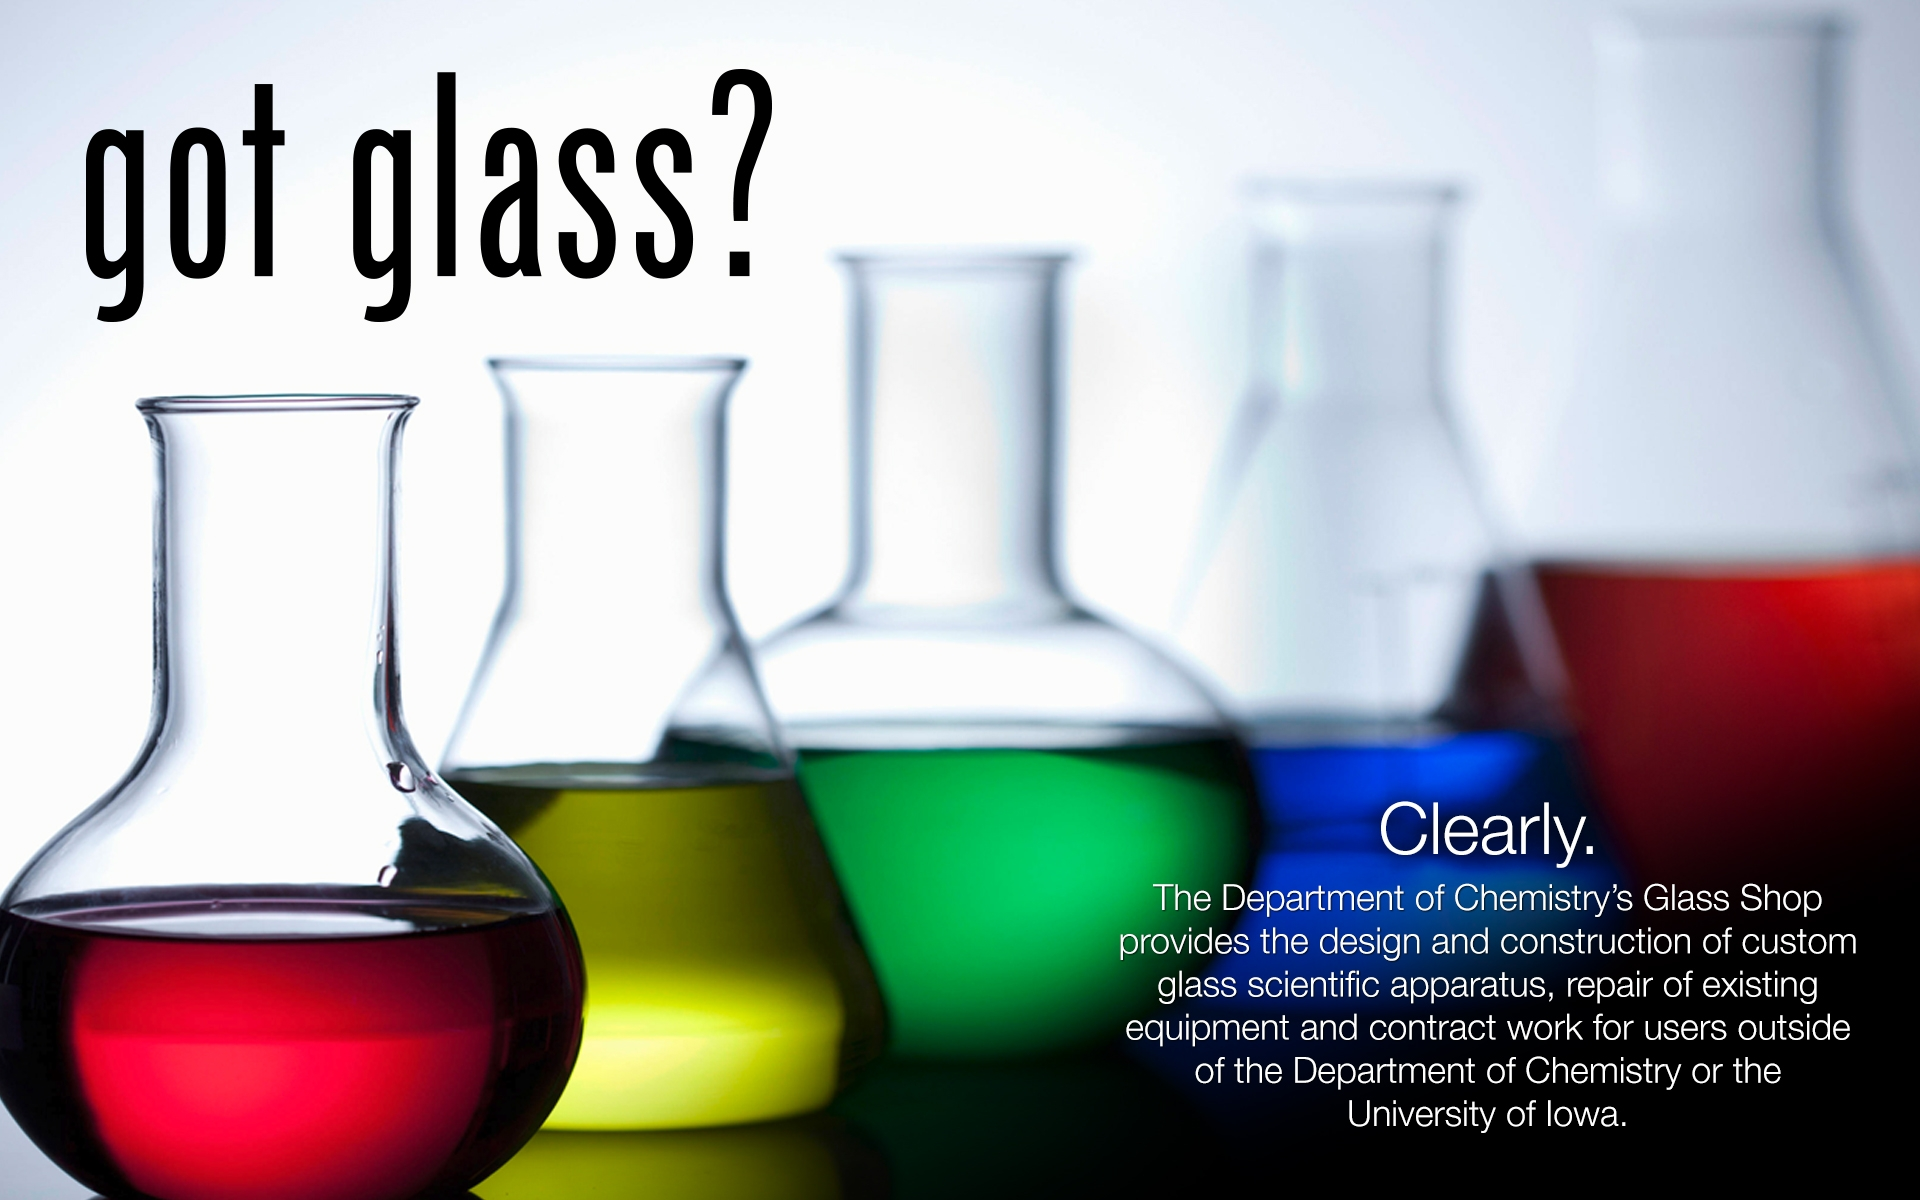 The Department of Chemistry's Glass Shop provides the design and construction of custom glass scientific apparatus, repair of existing equipment and contract work for users outside of the Department of Chemistry or the University of Iowa.